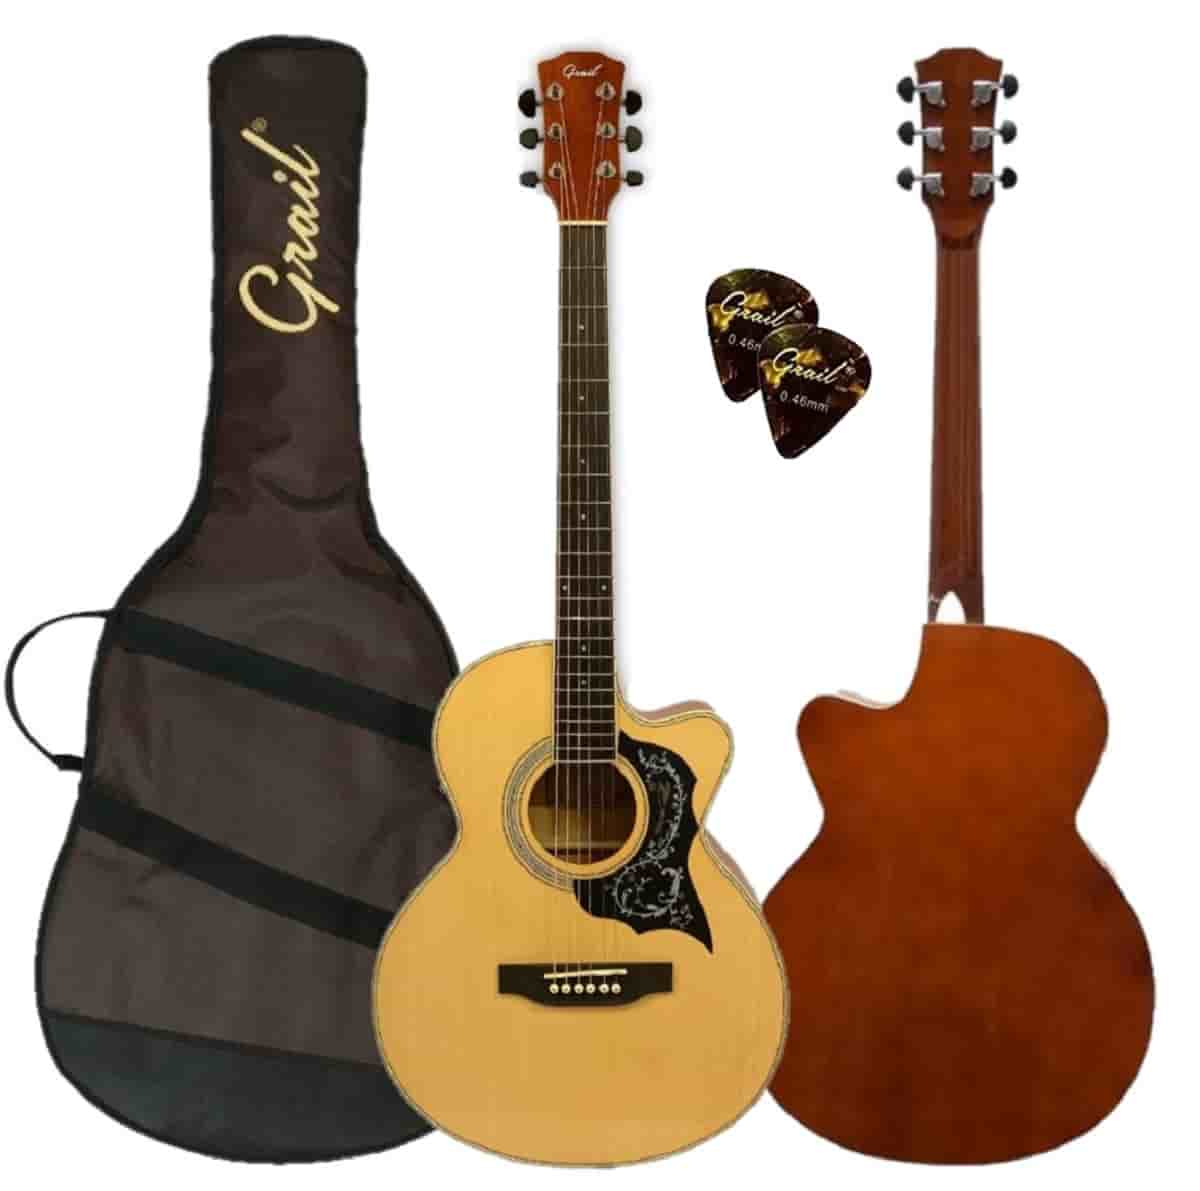 Grail Allure A190C SP Acoustic Guitar Cutaway Spruce Top  (FREE High Quality Padded Bag & 2 Picks)